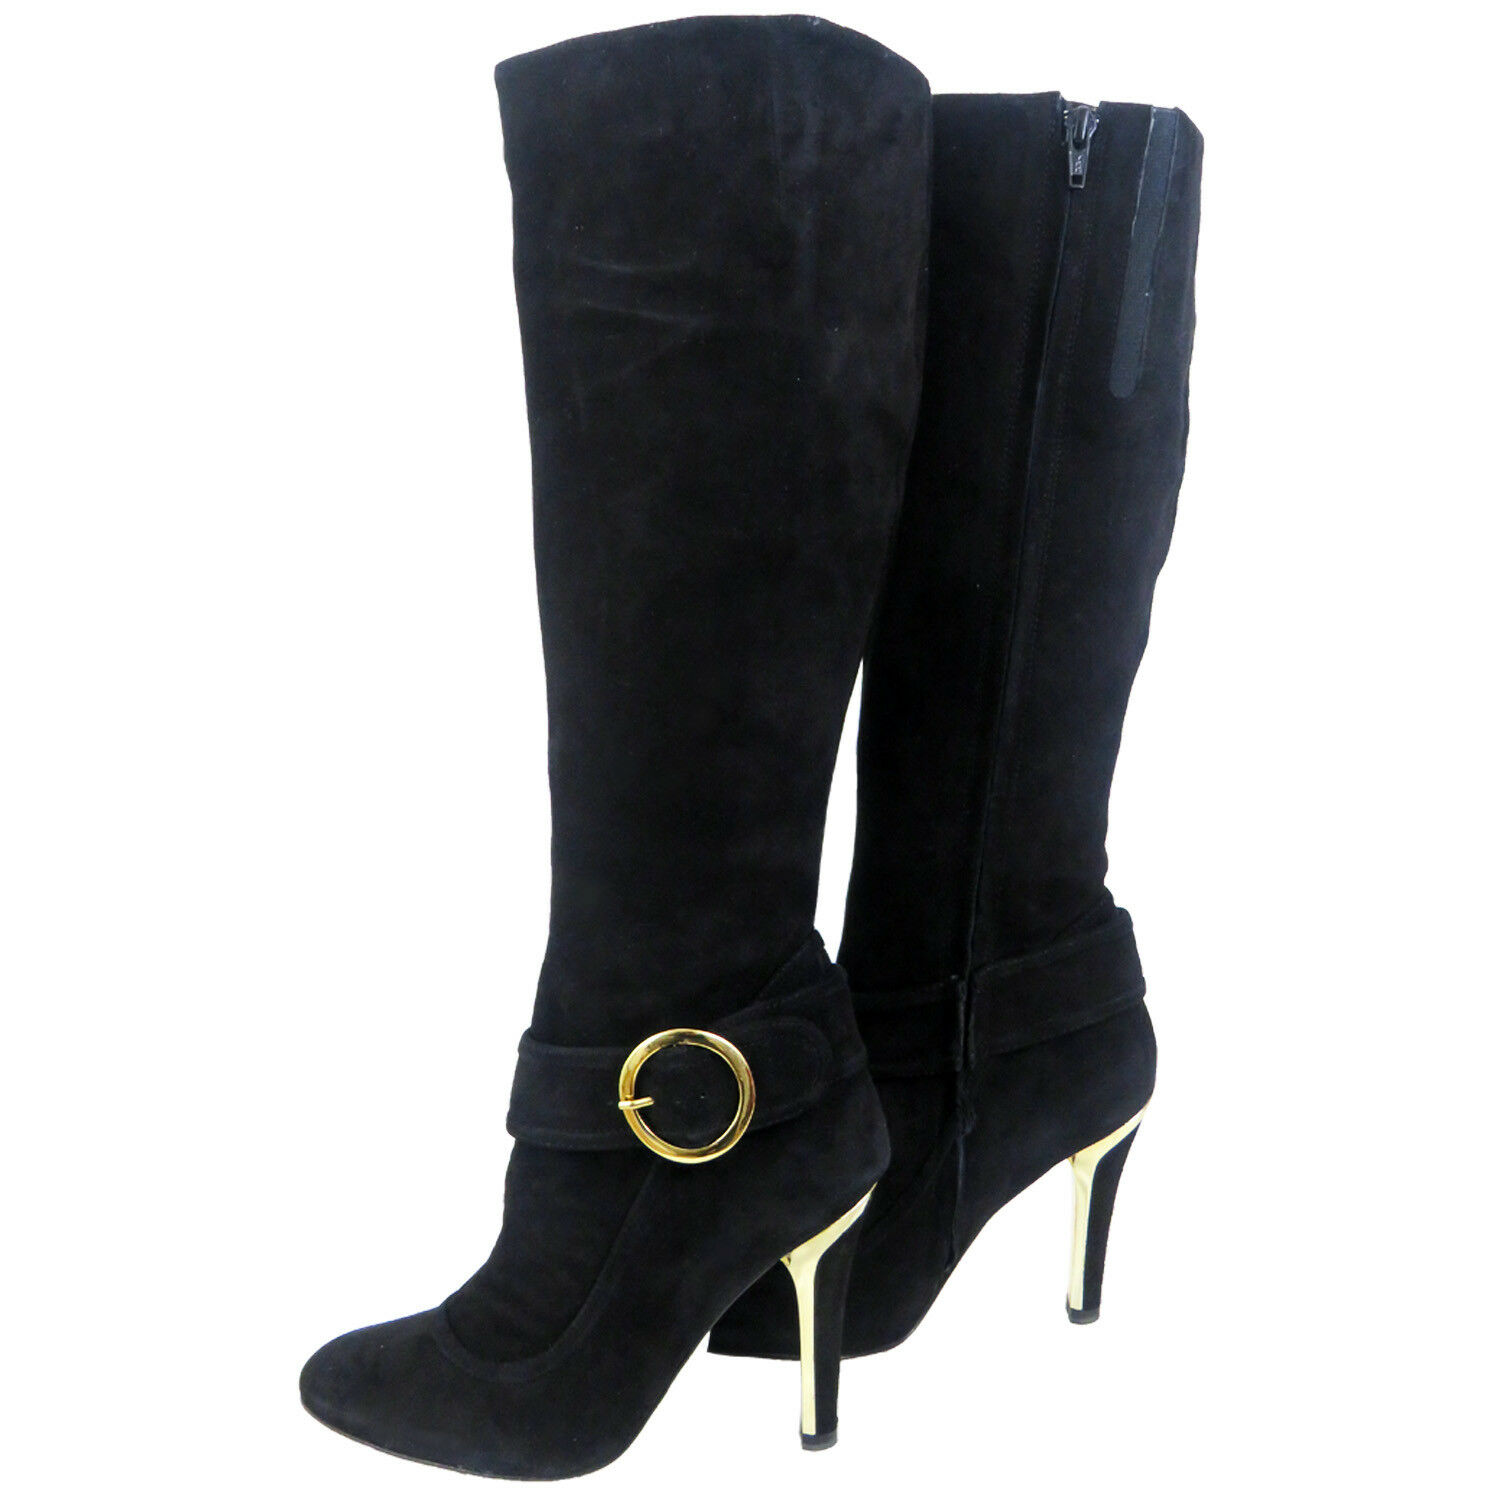 - Ladies Women Designer Fiona McGuinness  Suede Boot UK 4  EU 36.5